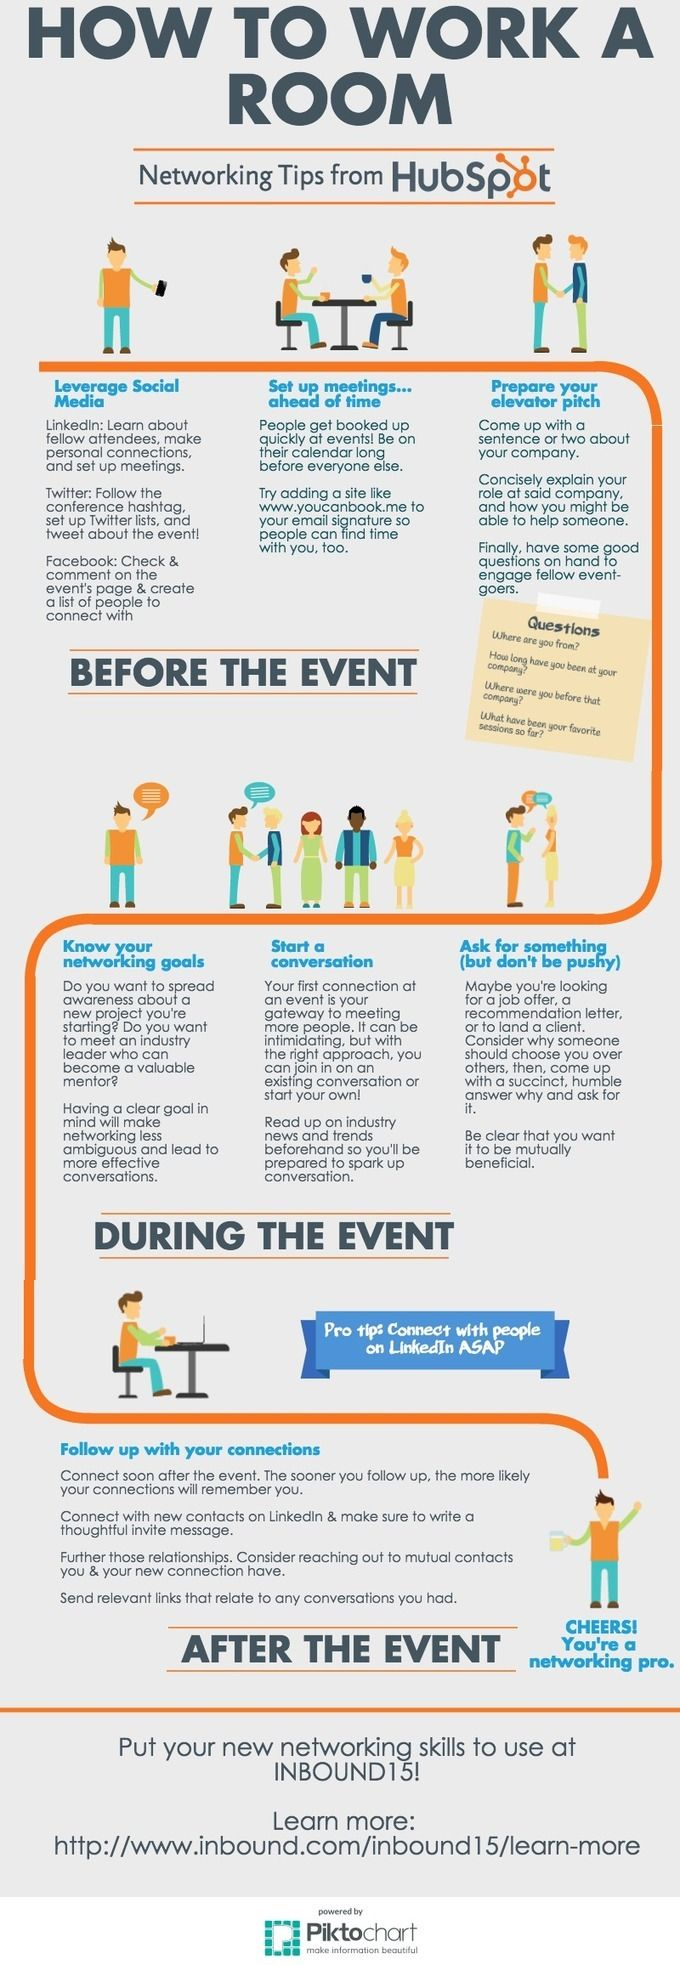 Elegant How To Work A Room: Networking Tips From HubSpot [Infographic]